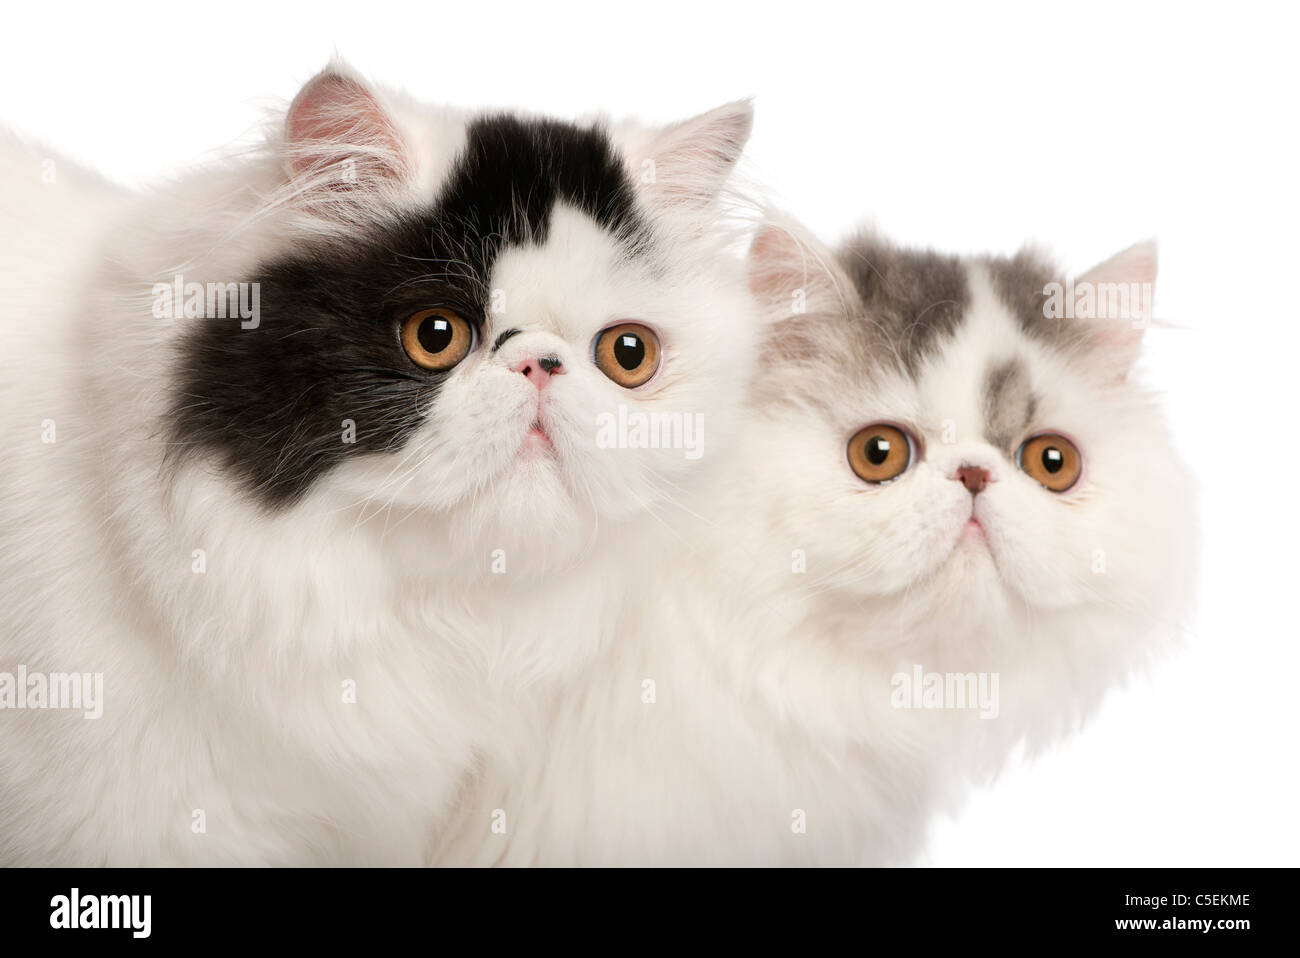 Persian cats, 6 months old, in front of white background Stock Photo